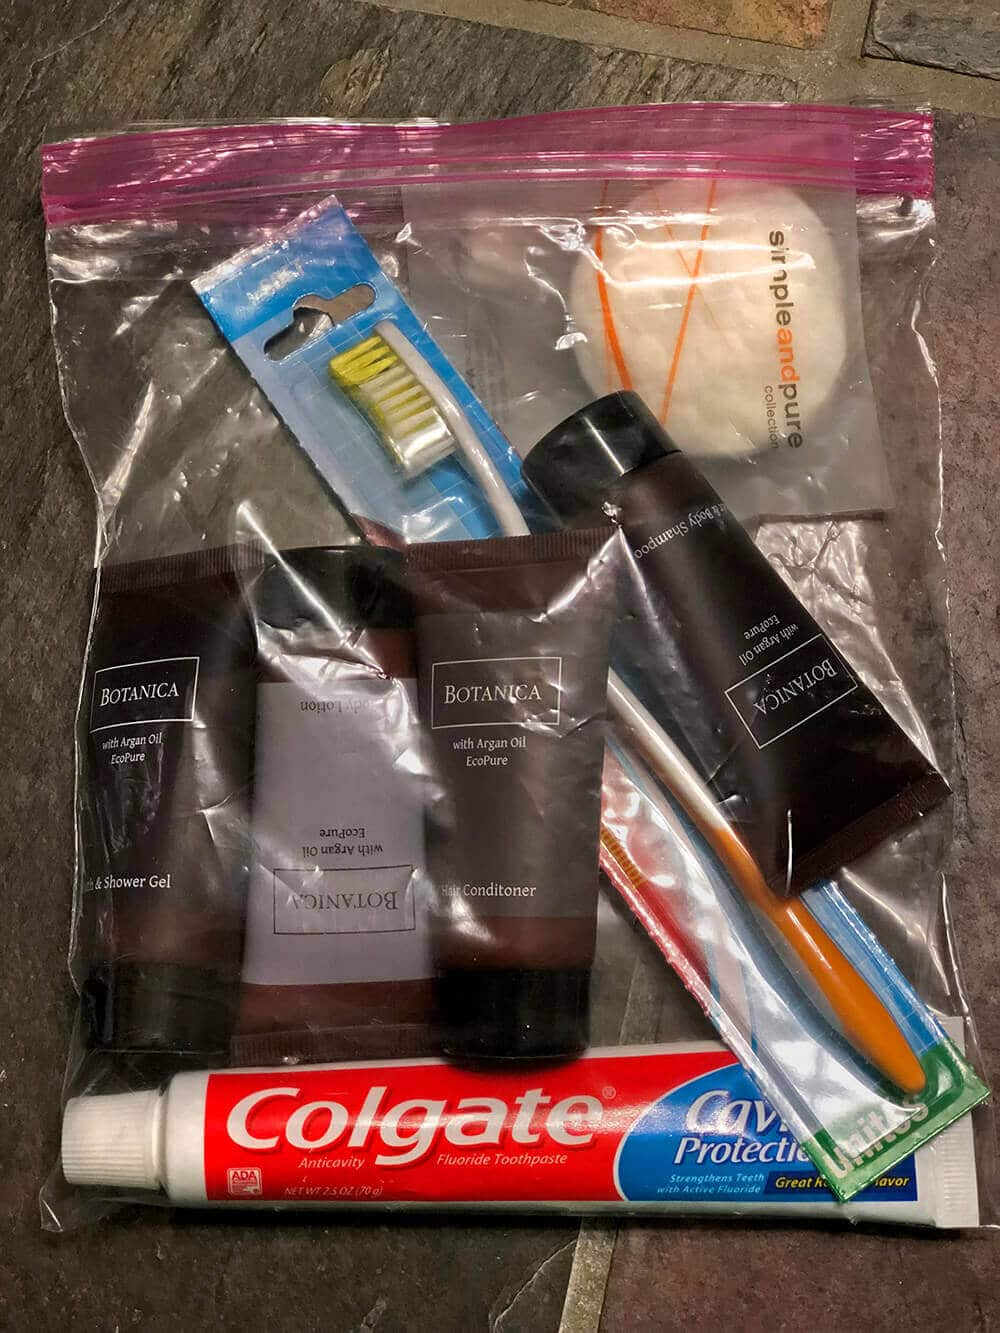 Hygiene kit with unused hotel toiletries for homeless